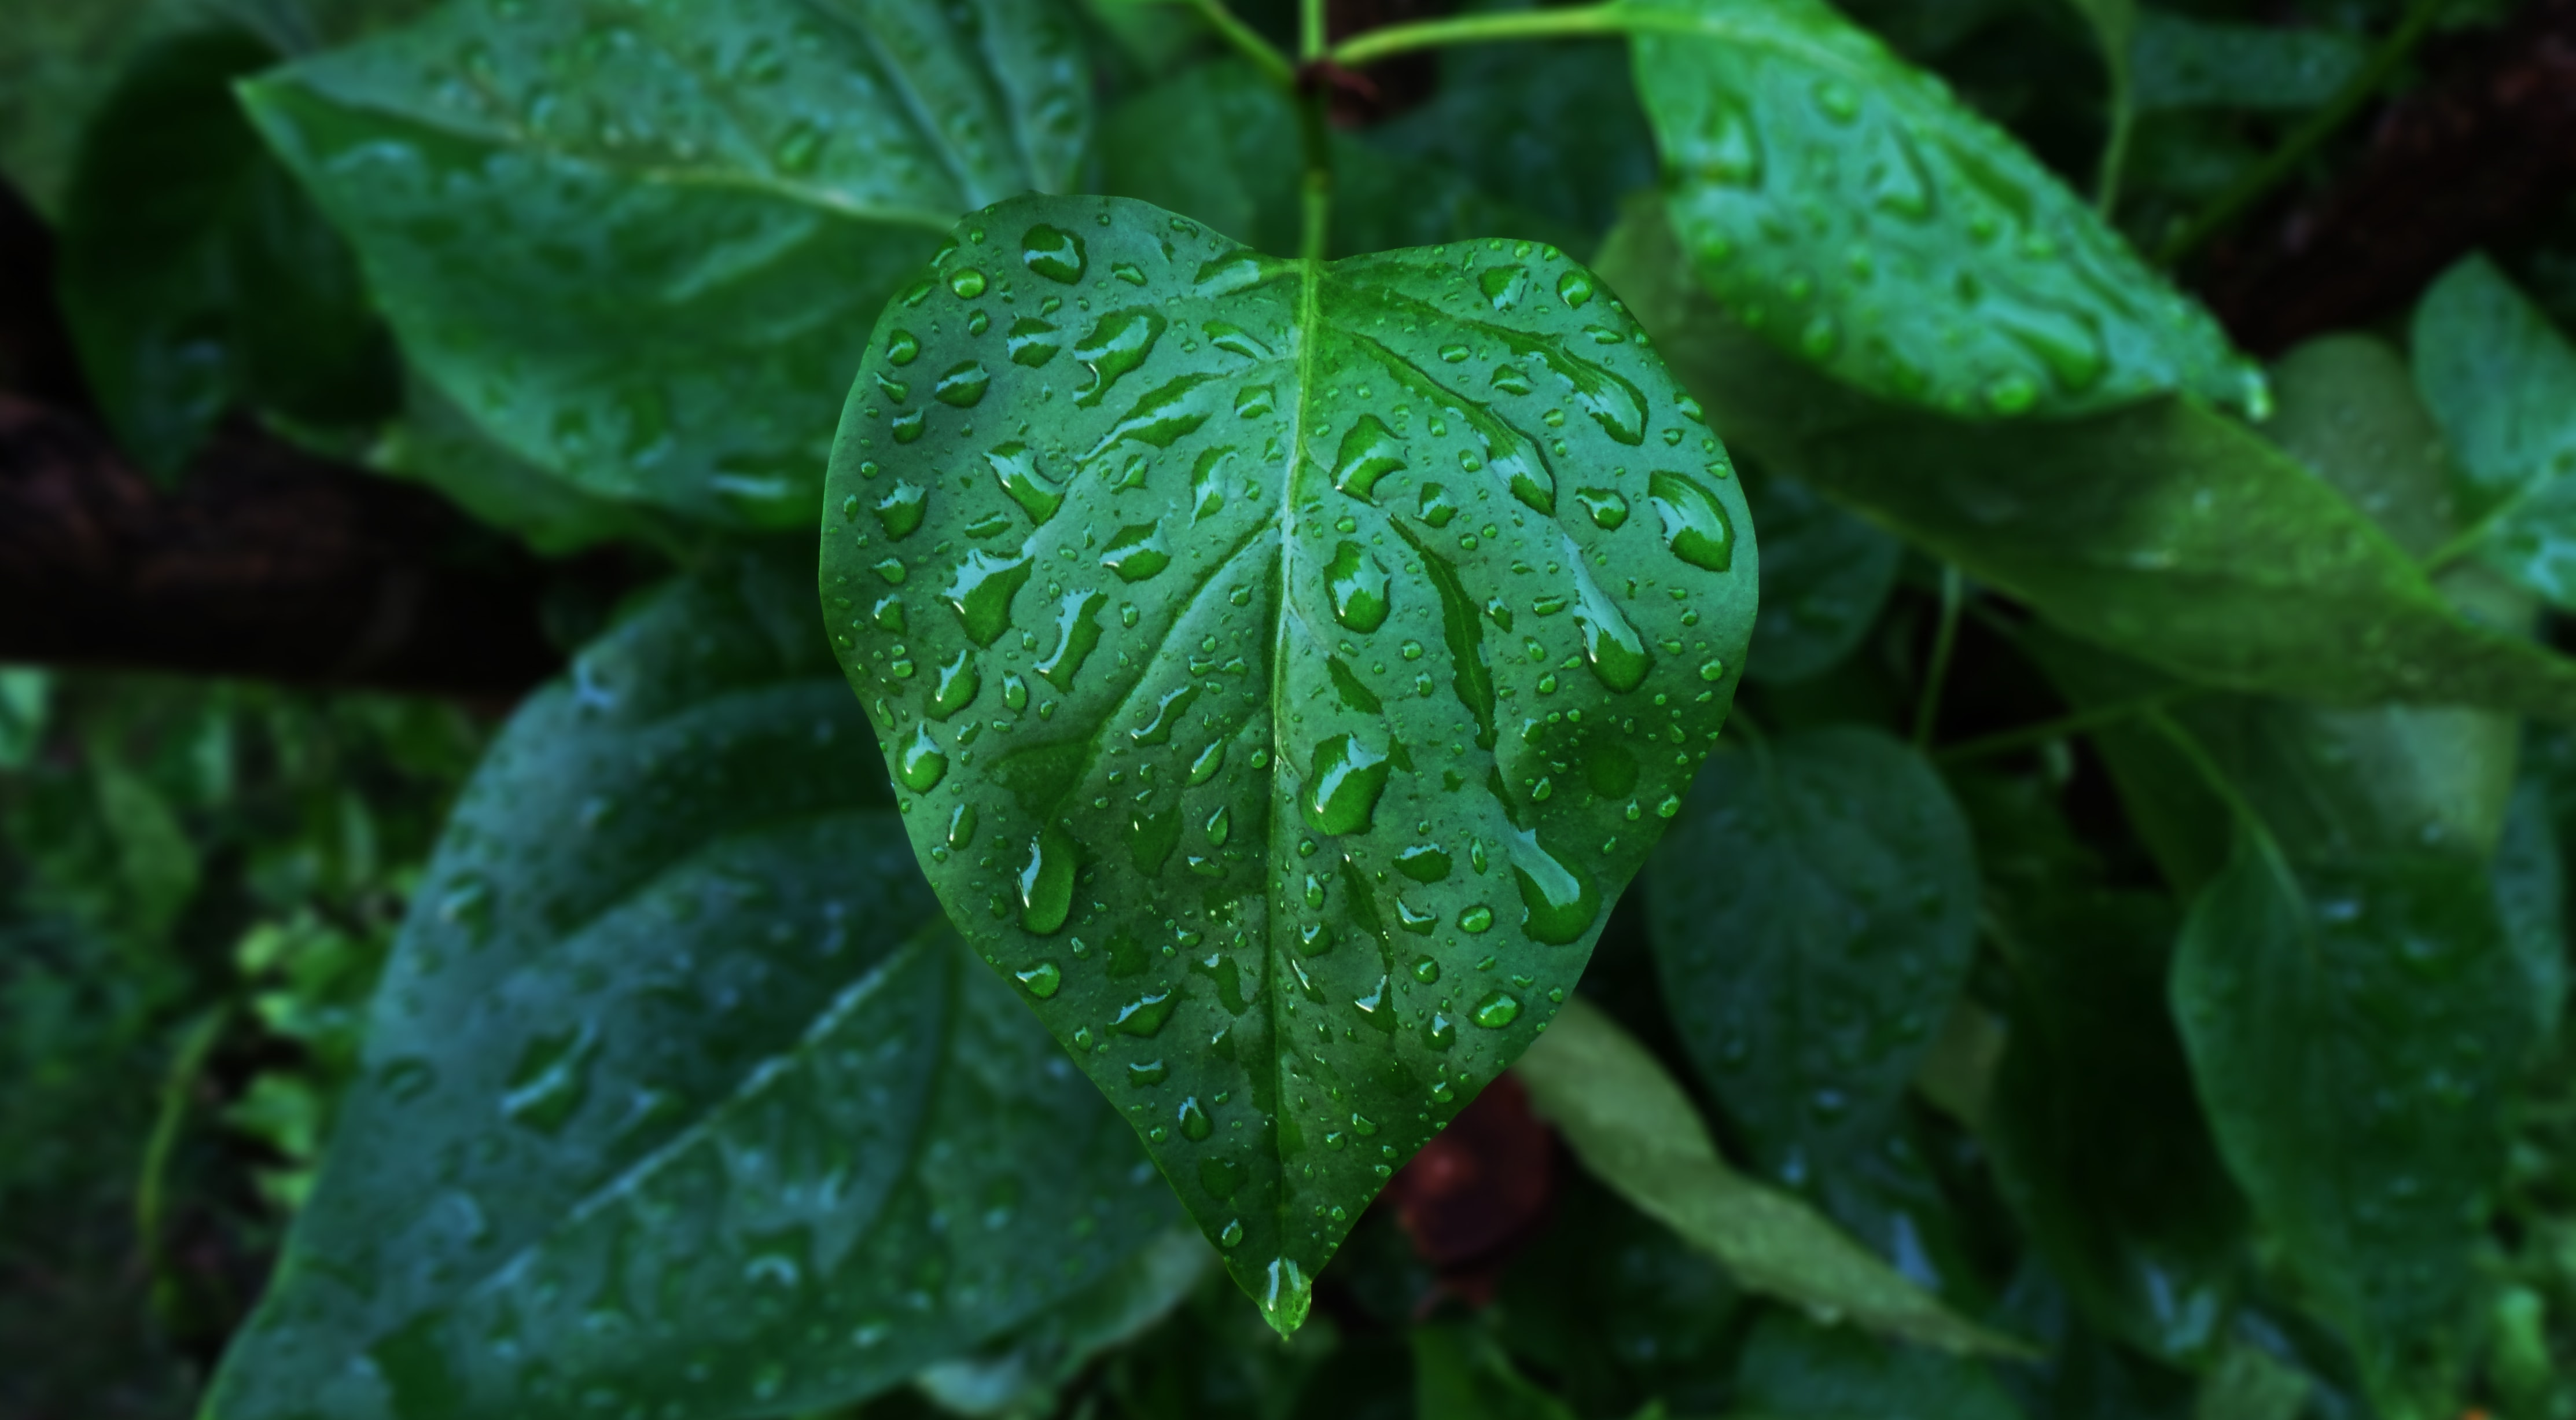 Water droplets fall on a green leafy plant